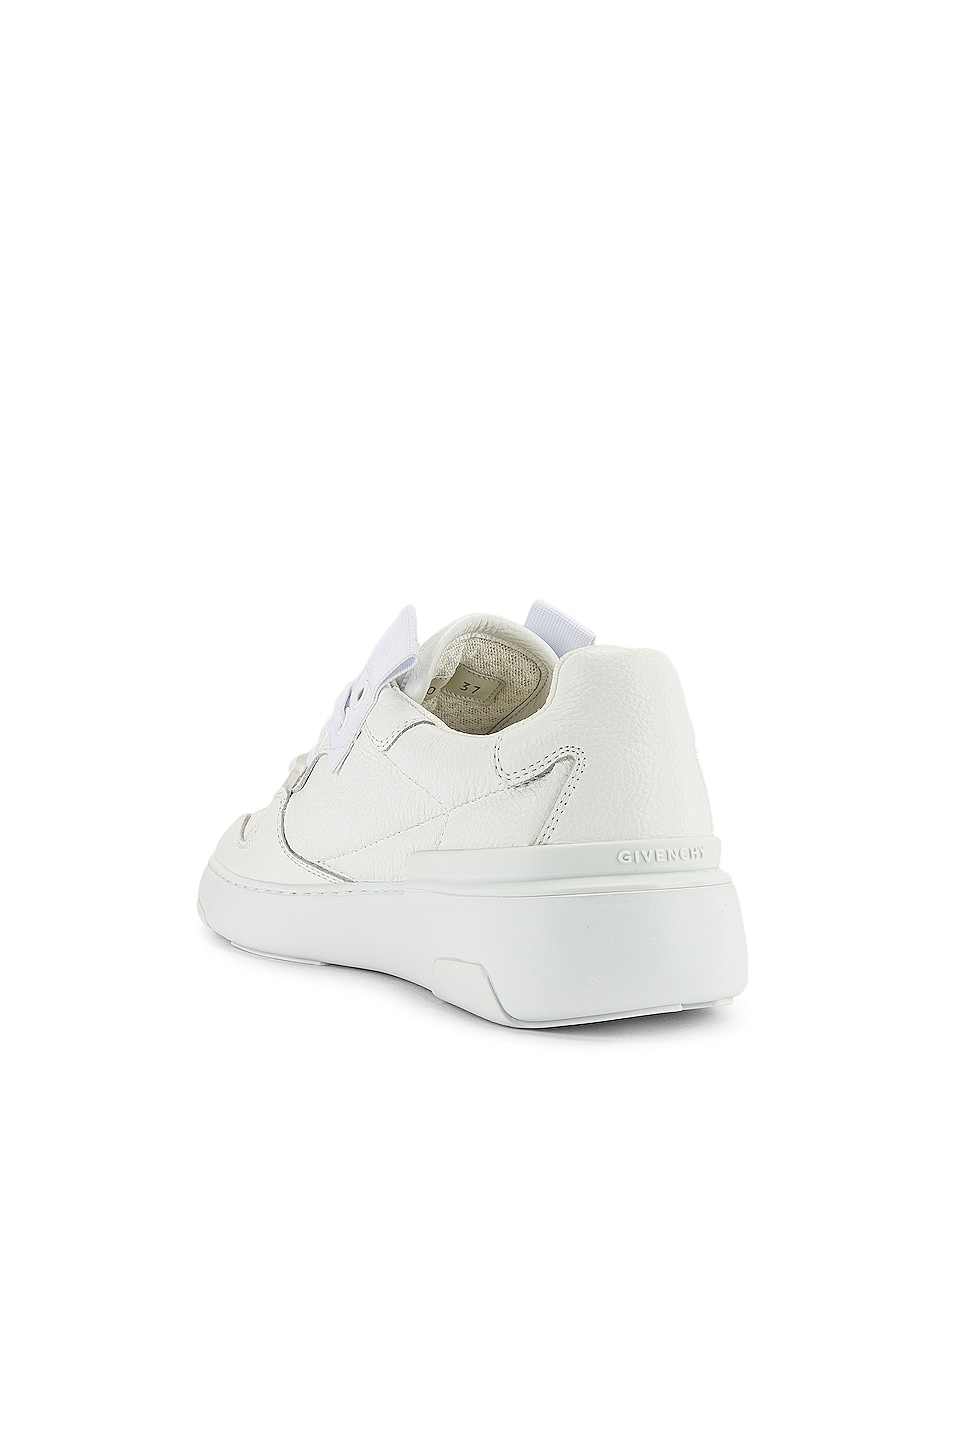 Image 3 of Givenchy Wing Low Top Sneakers in White